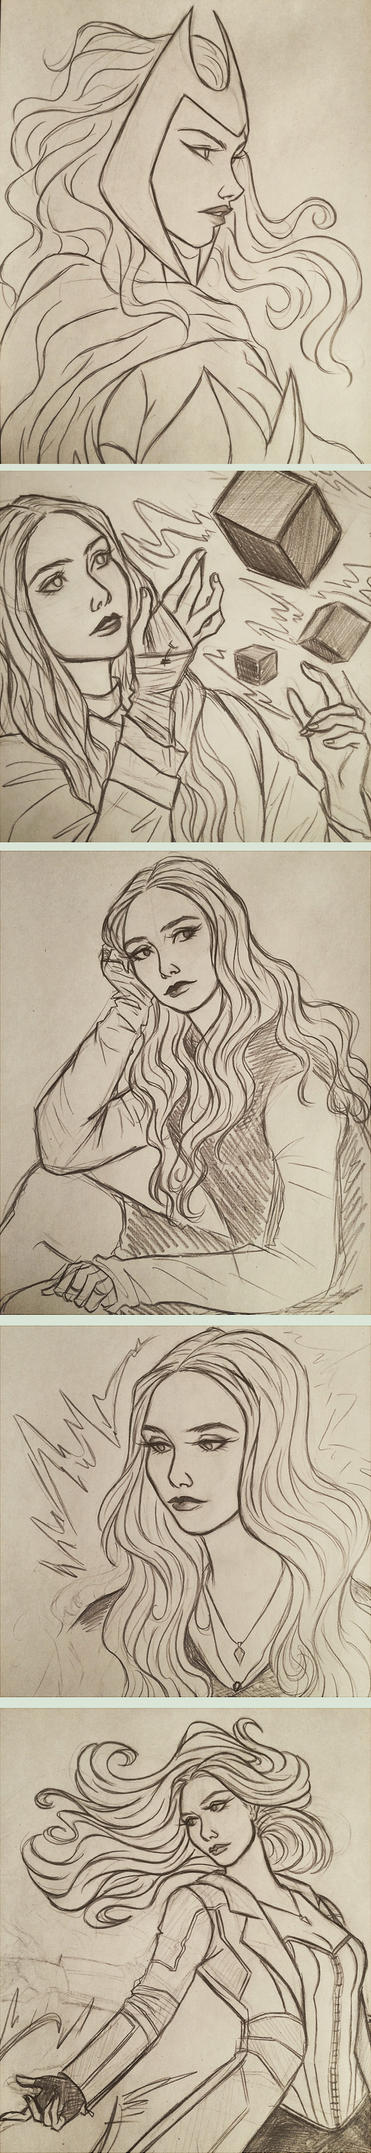 Scarlet Witch sketches by 7Lisa